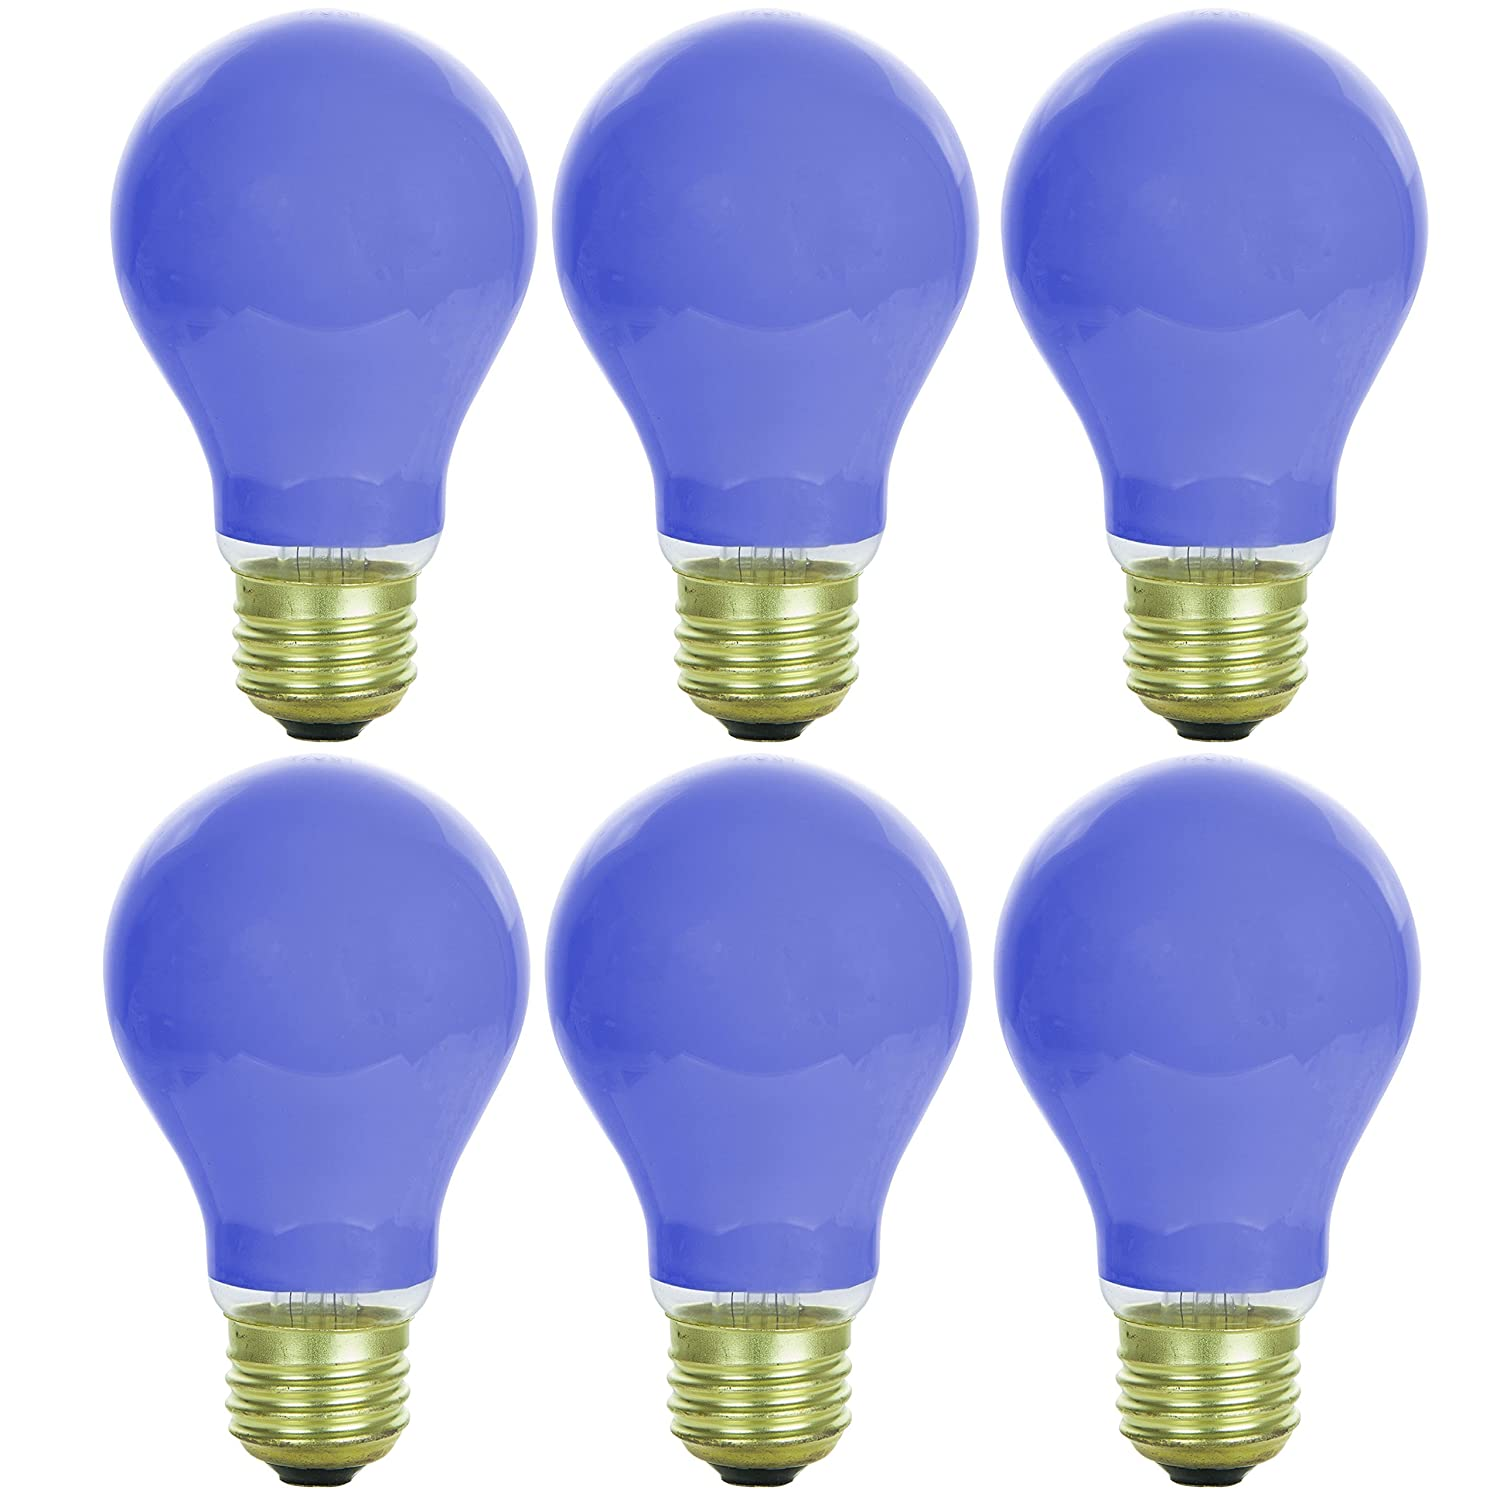 Sunlite Incandescent Red A19 60W Light Bulbs with Medium E26 Base (6 Pack) 60A/R/6PK